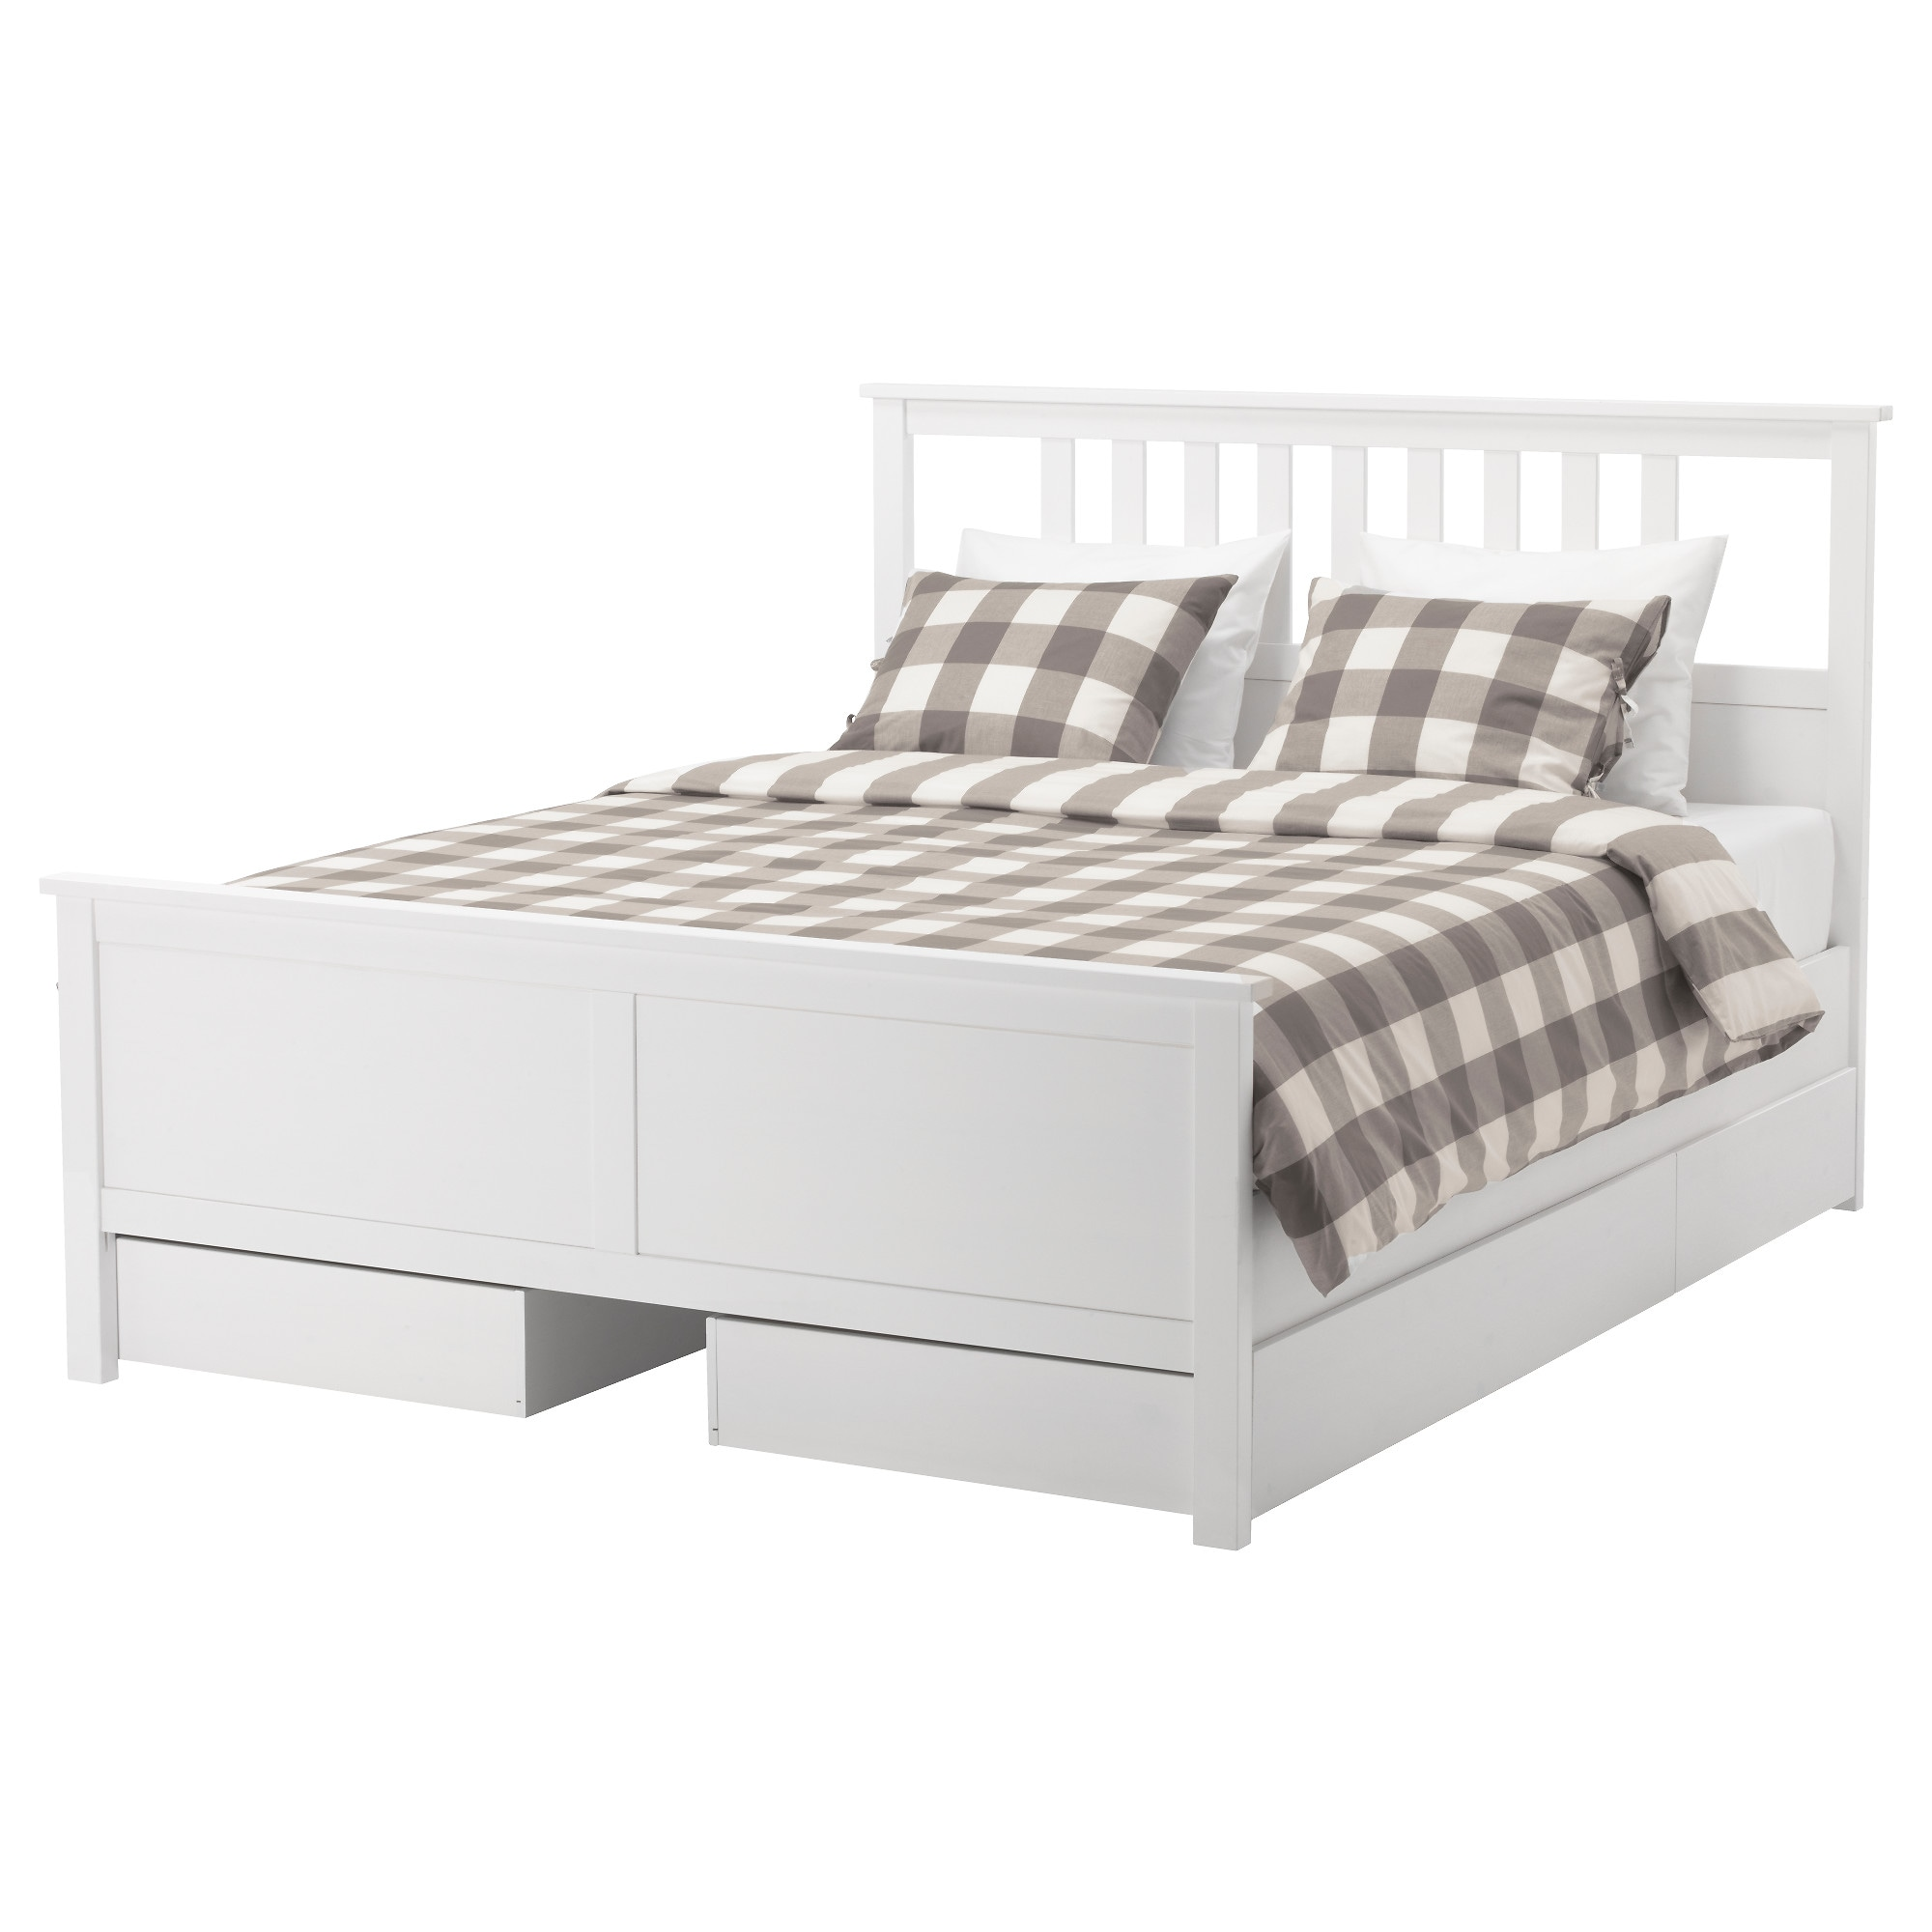 hemnes bed frame with 4 storage boxes white stain length 79 18